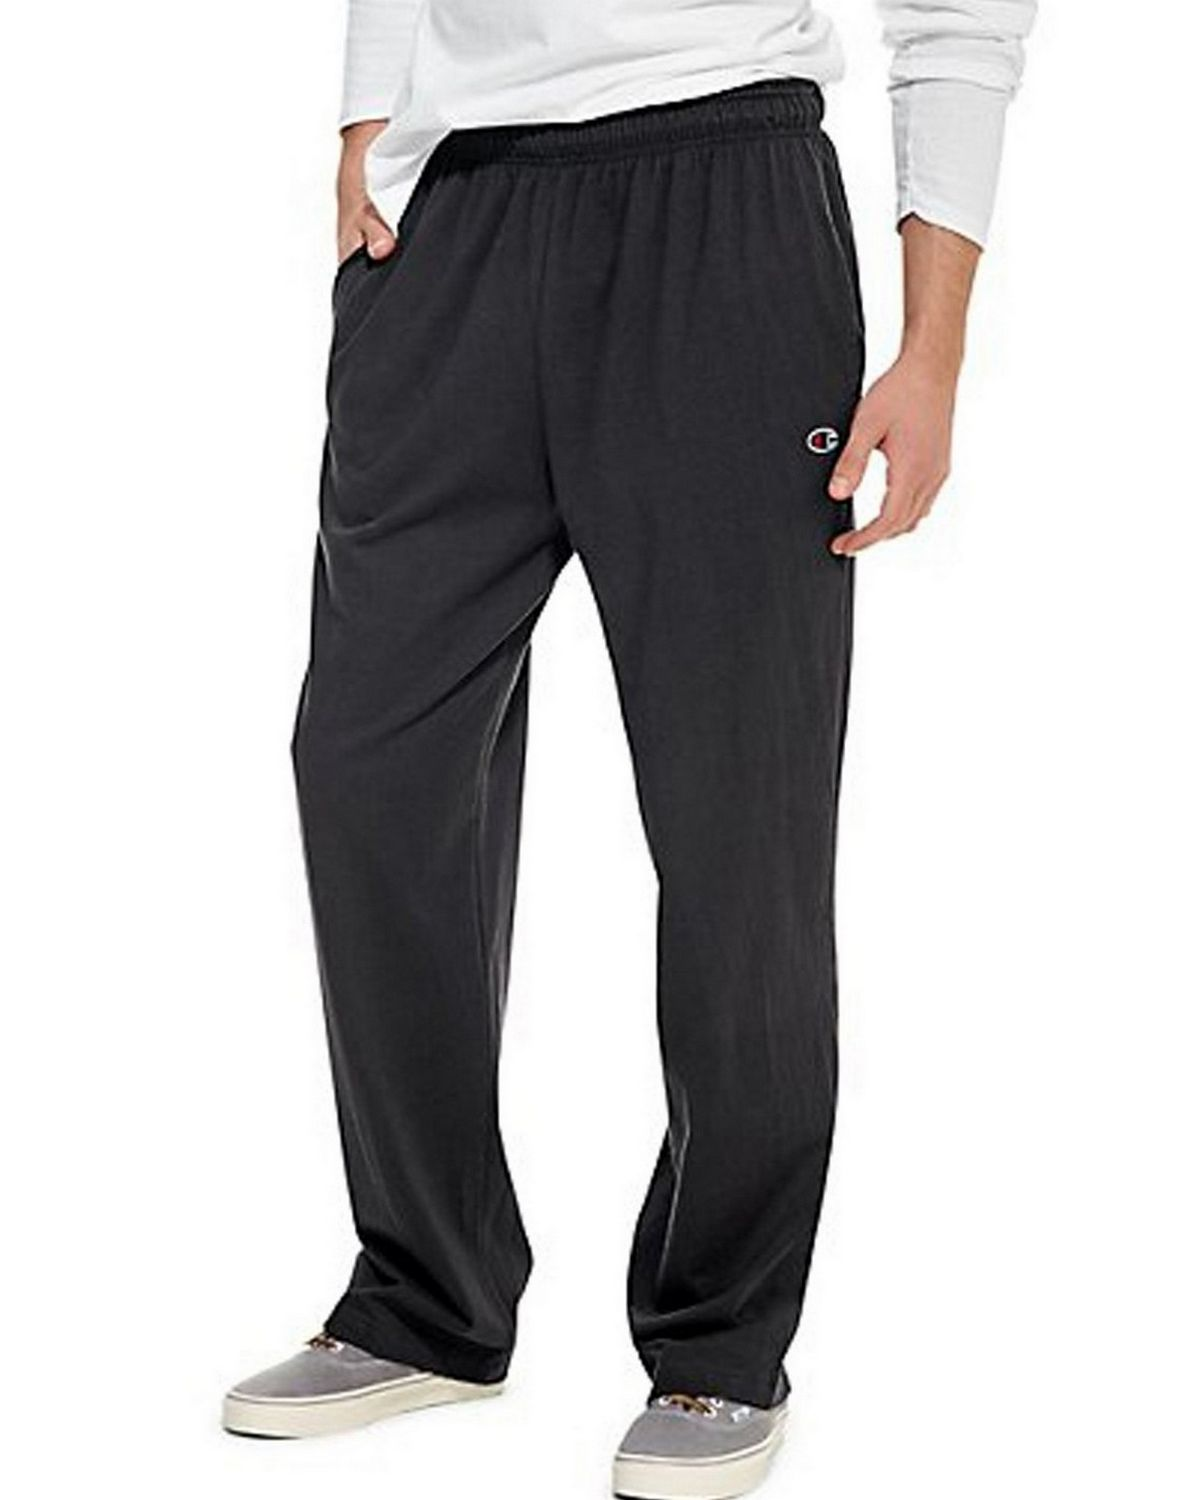 Champion P7309 Authentic Mens Open Bottom Jersey Pants - Black - S P7309